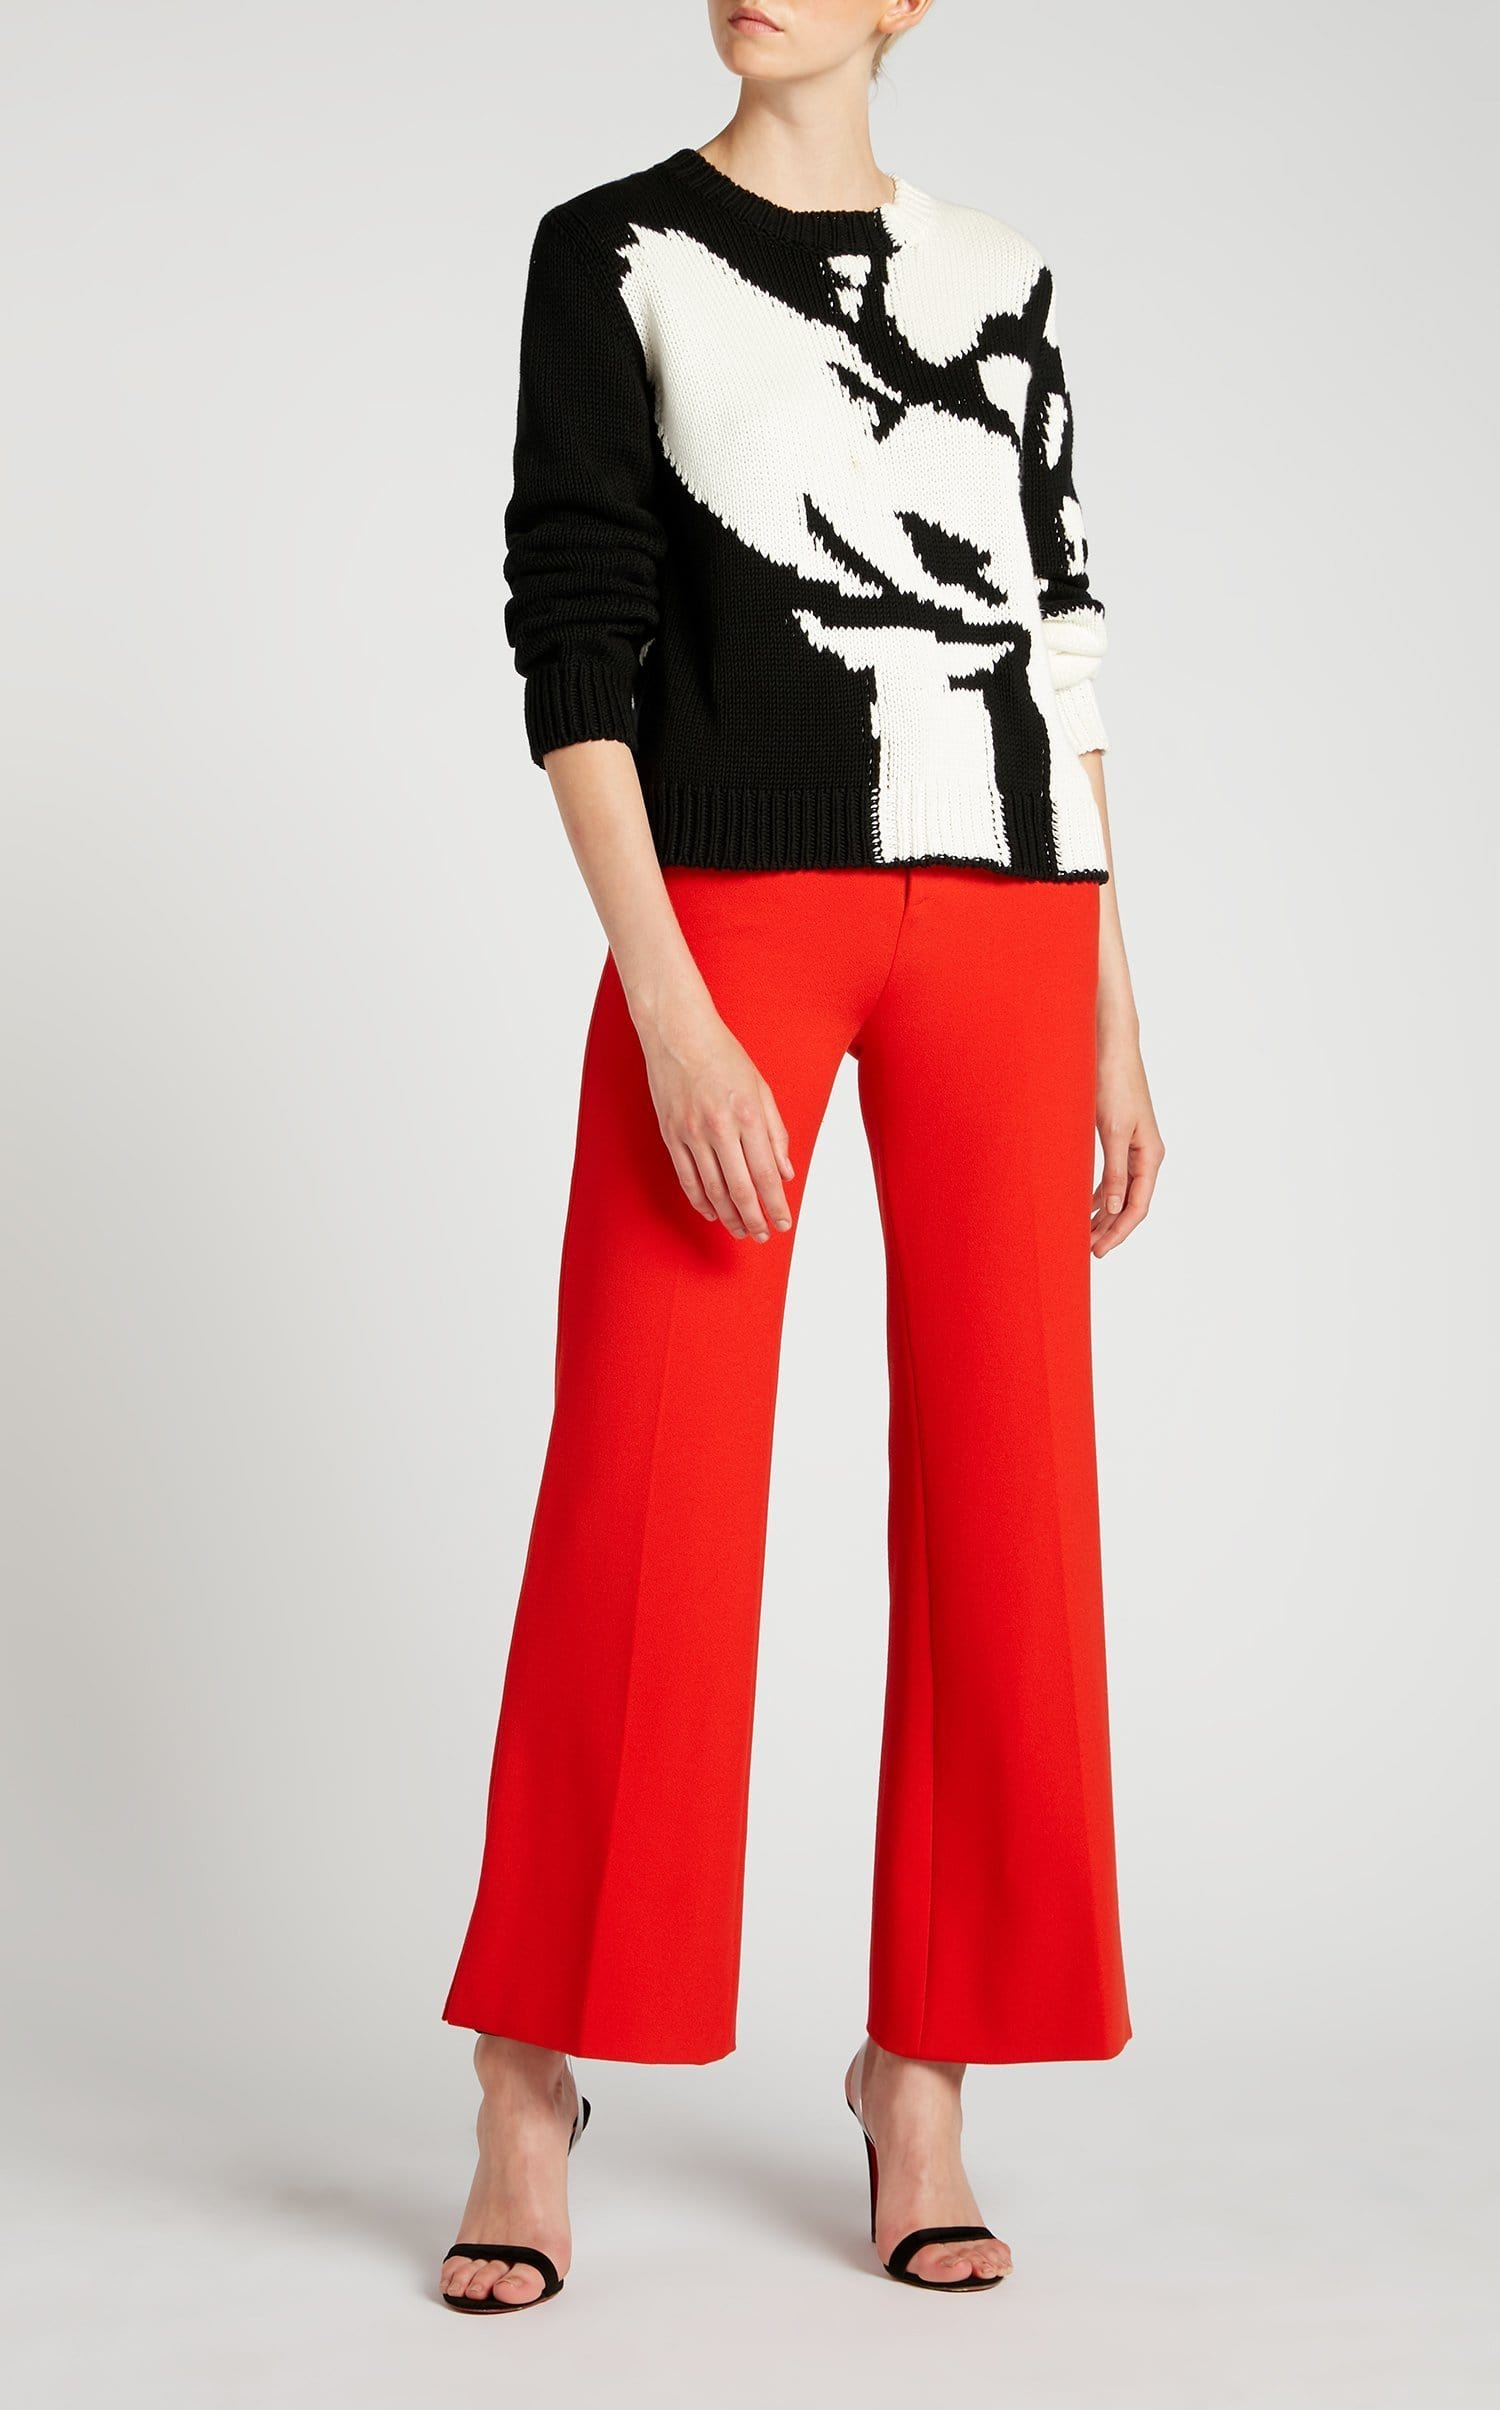 Kinny Jumper In White/Black from Roland Mouret